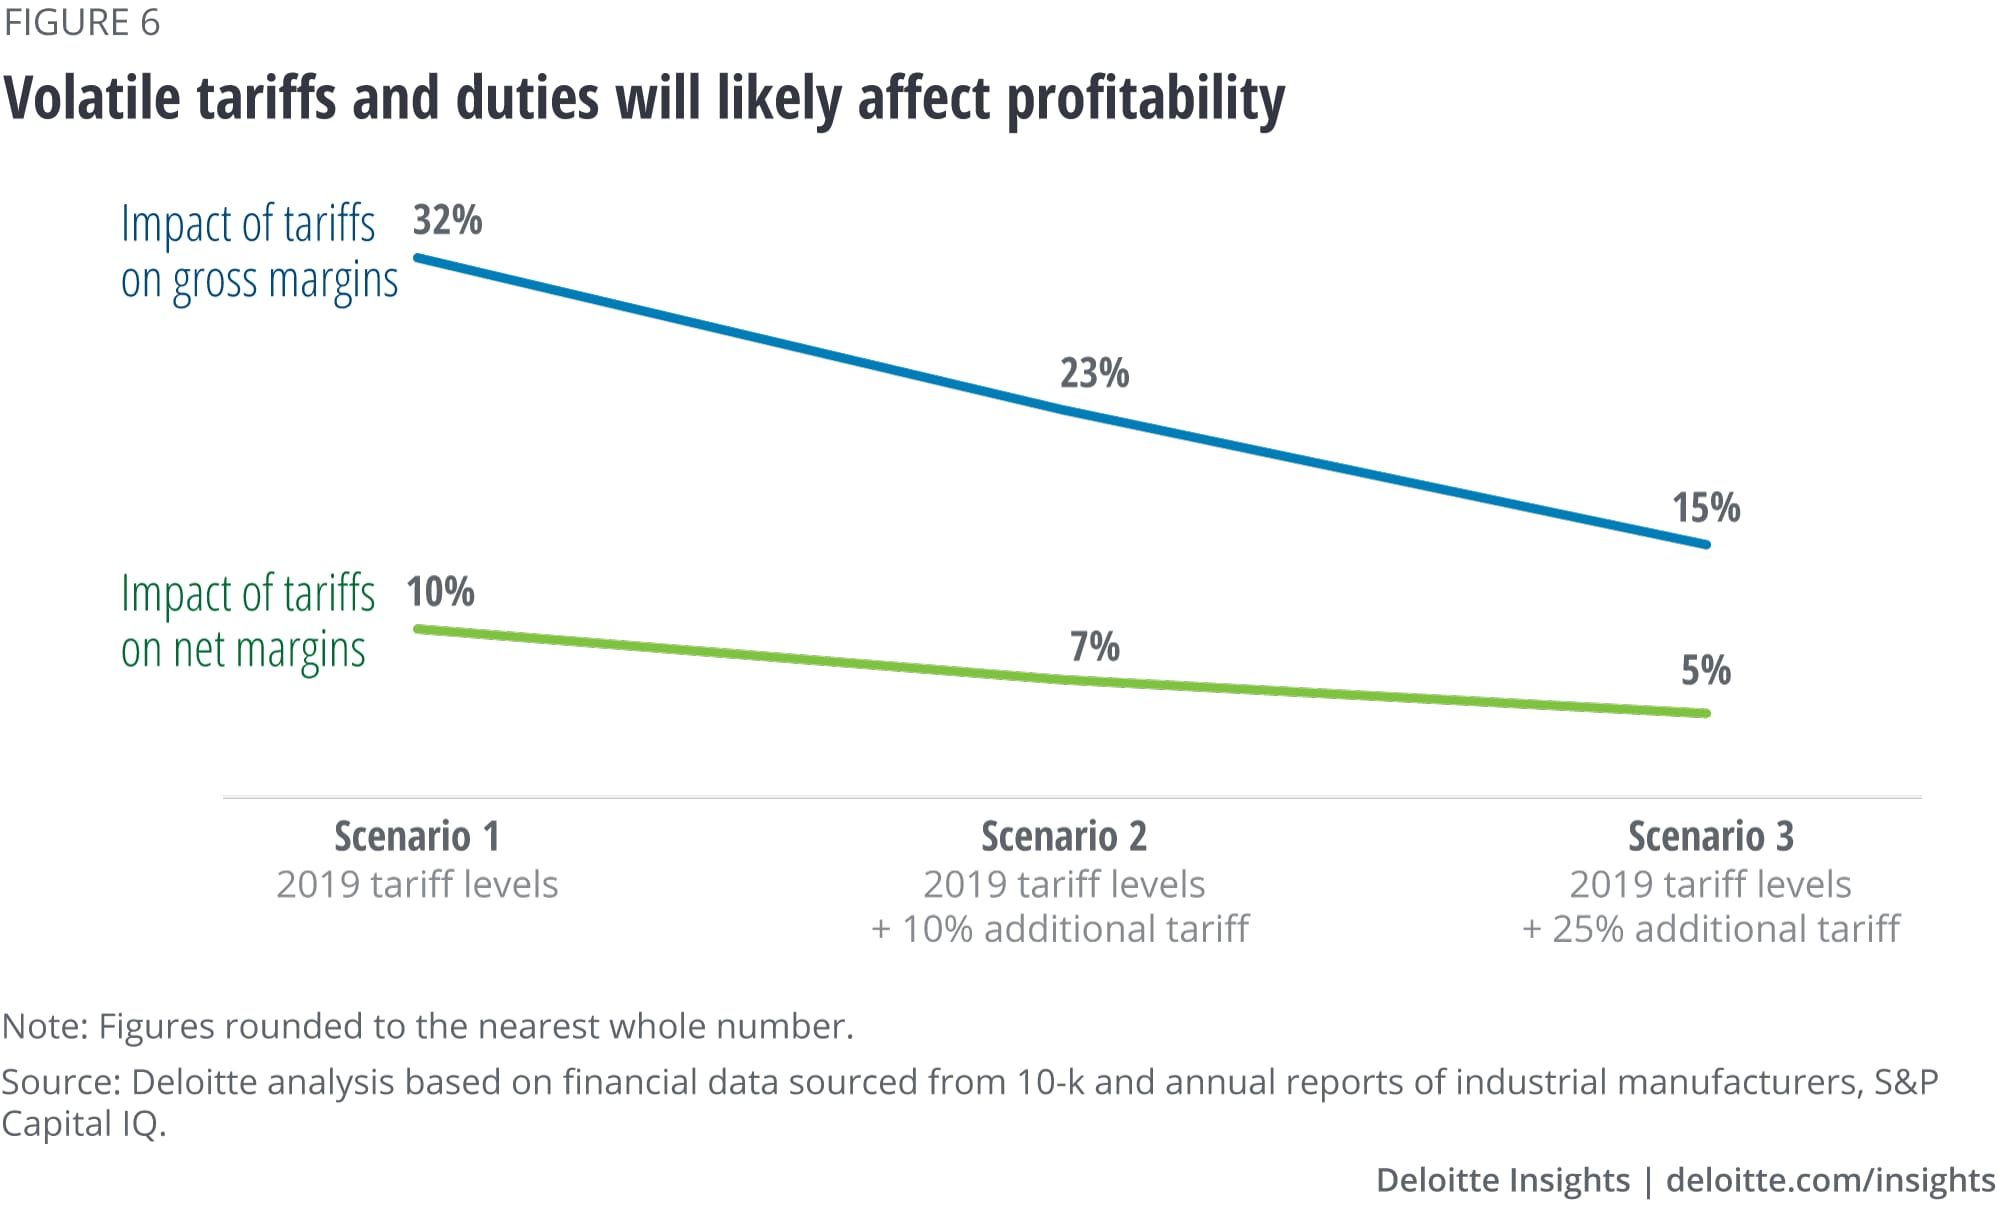 Volatile tariffs and duties will likely affect profitability